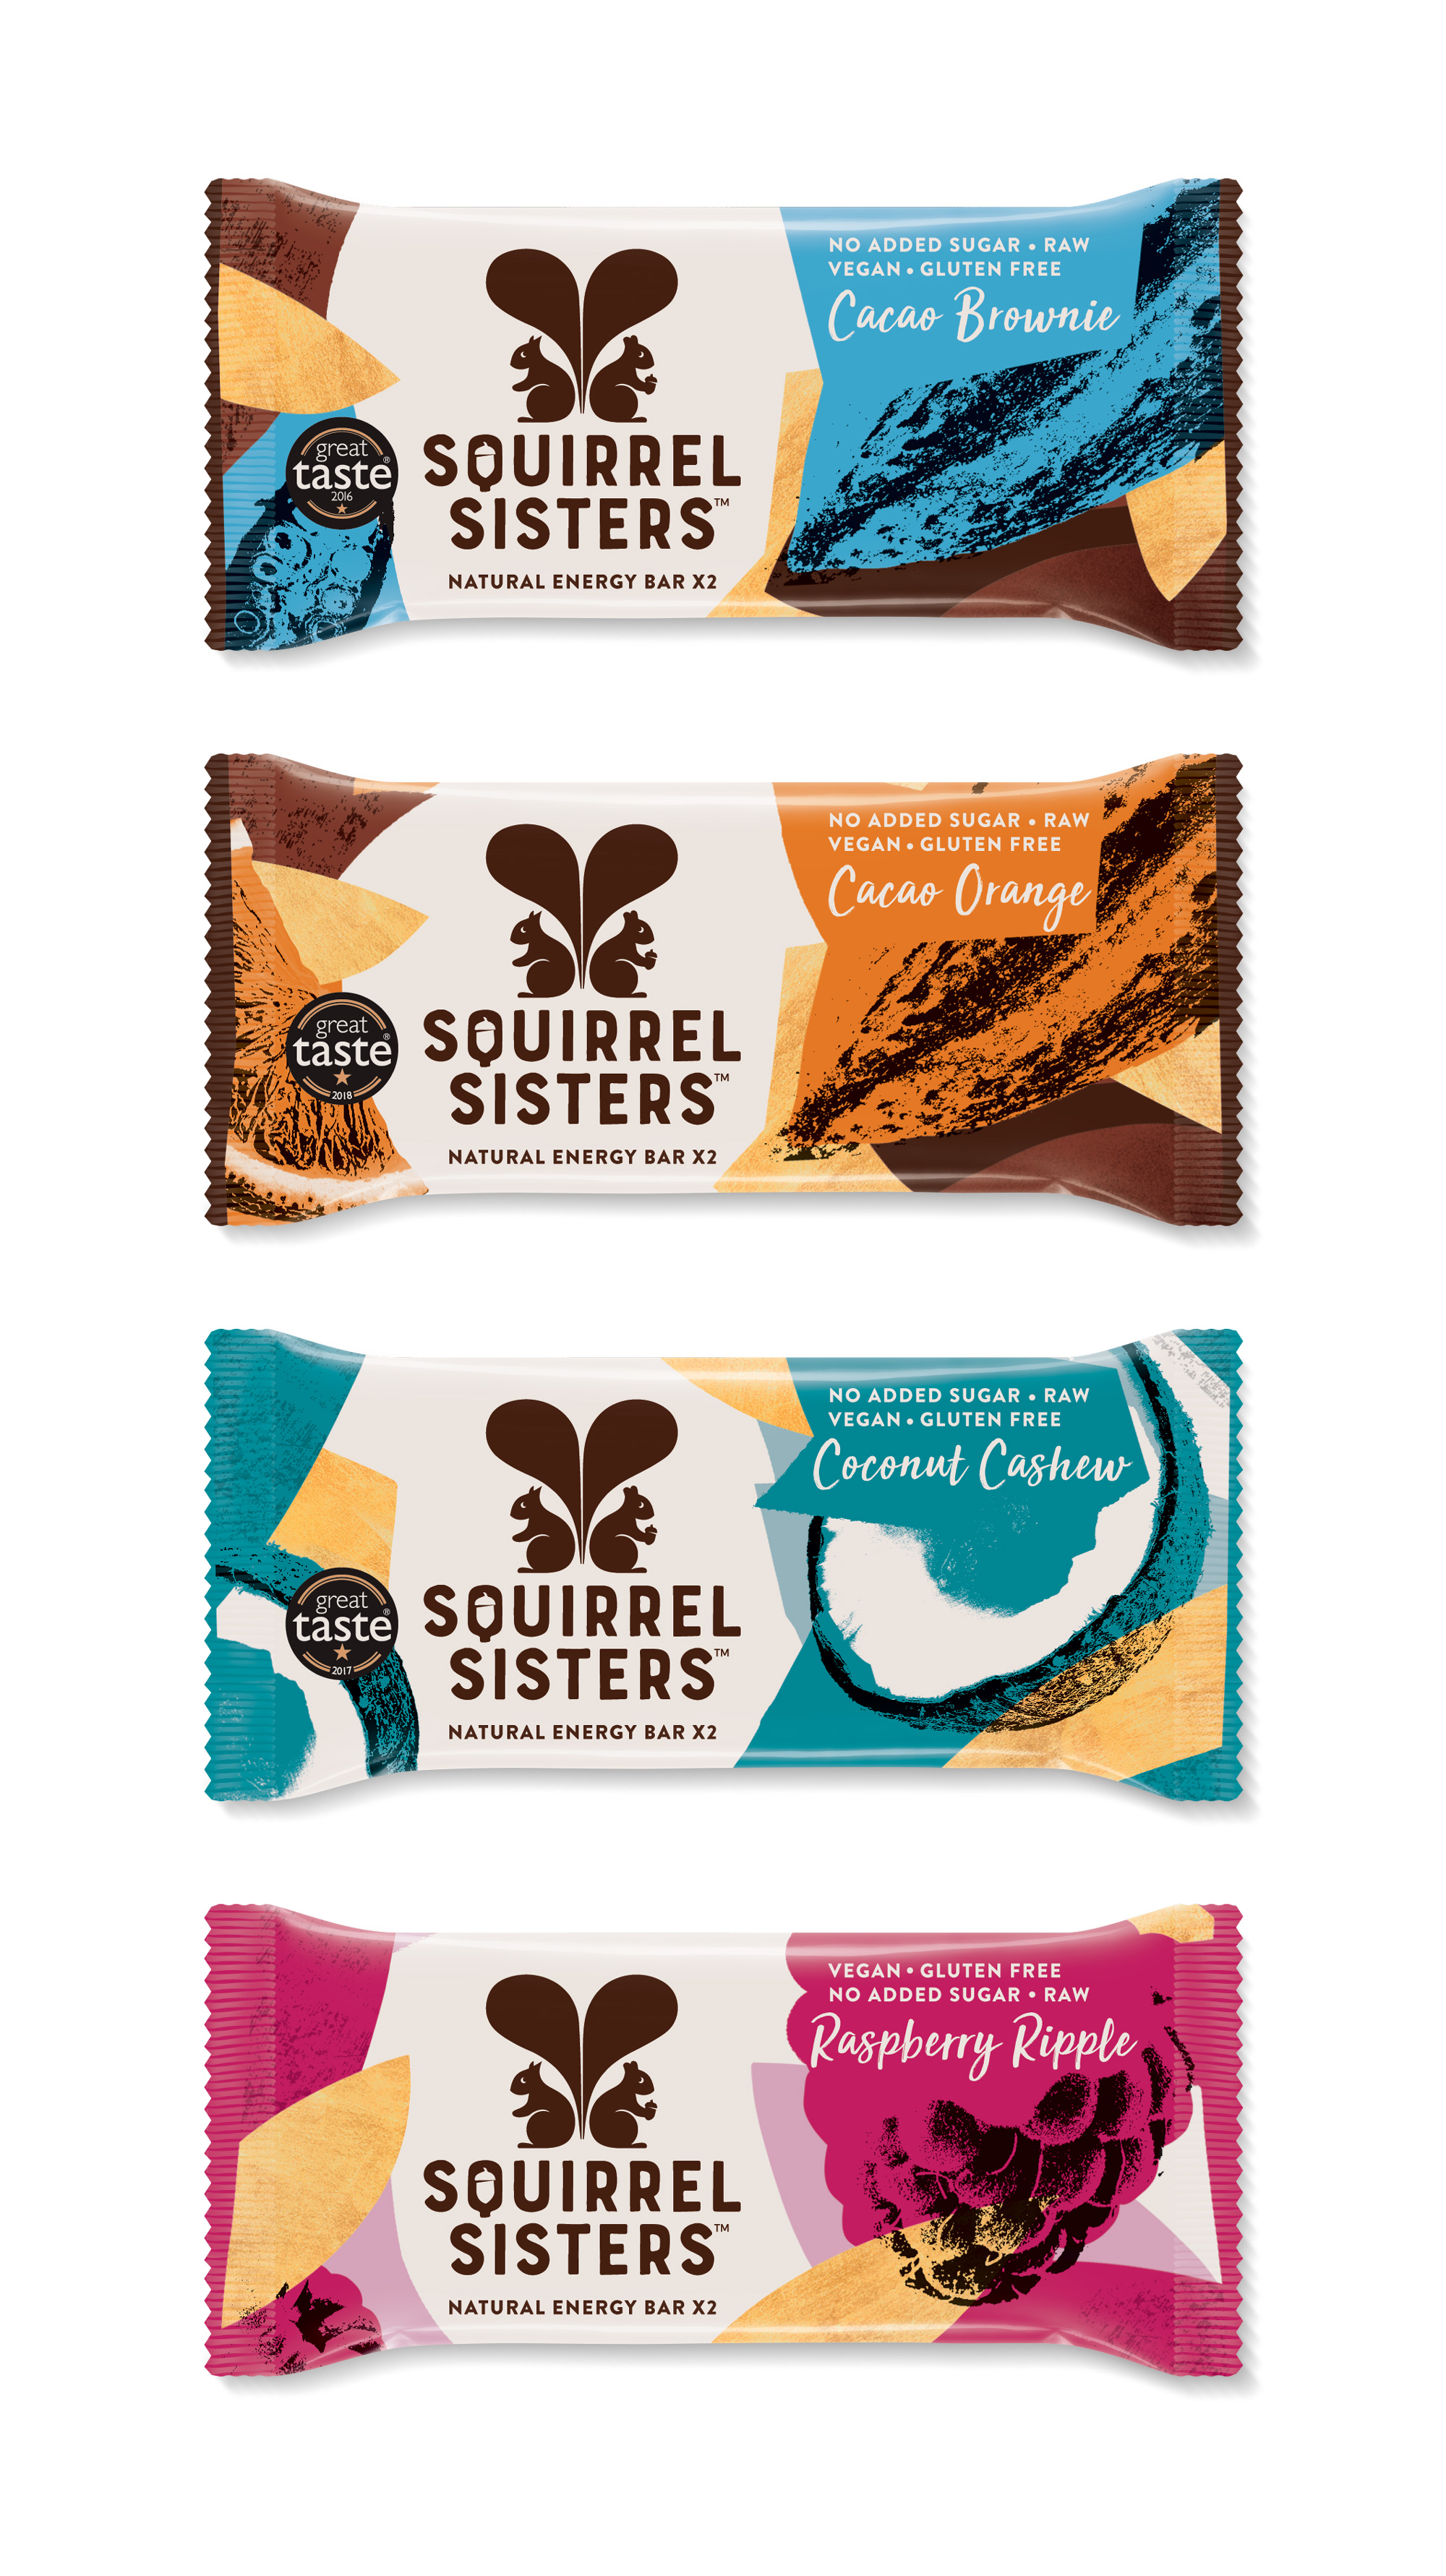 New Logo and Packaging for Squirrel Sisters by Design Bridge